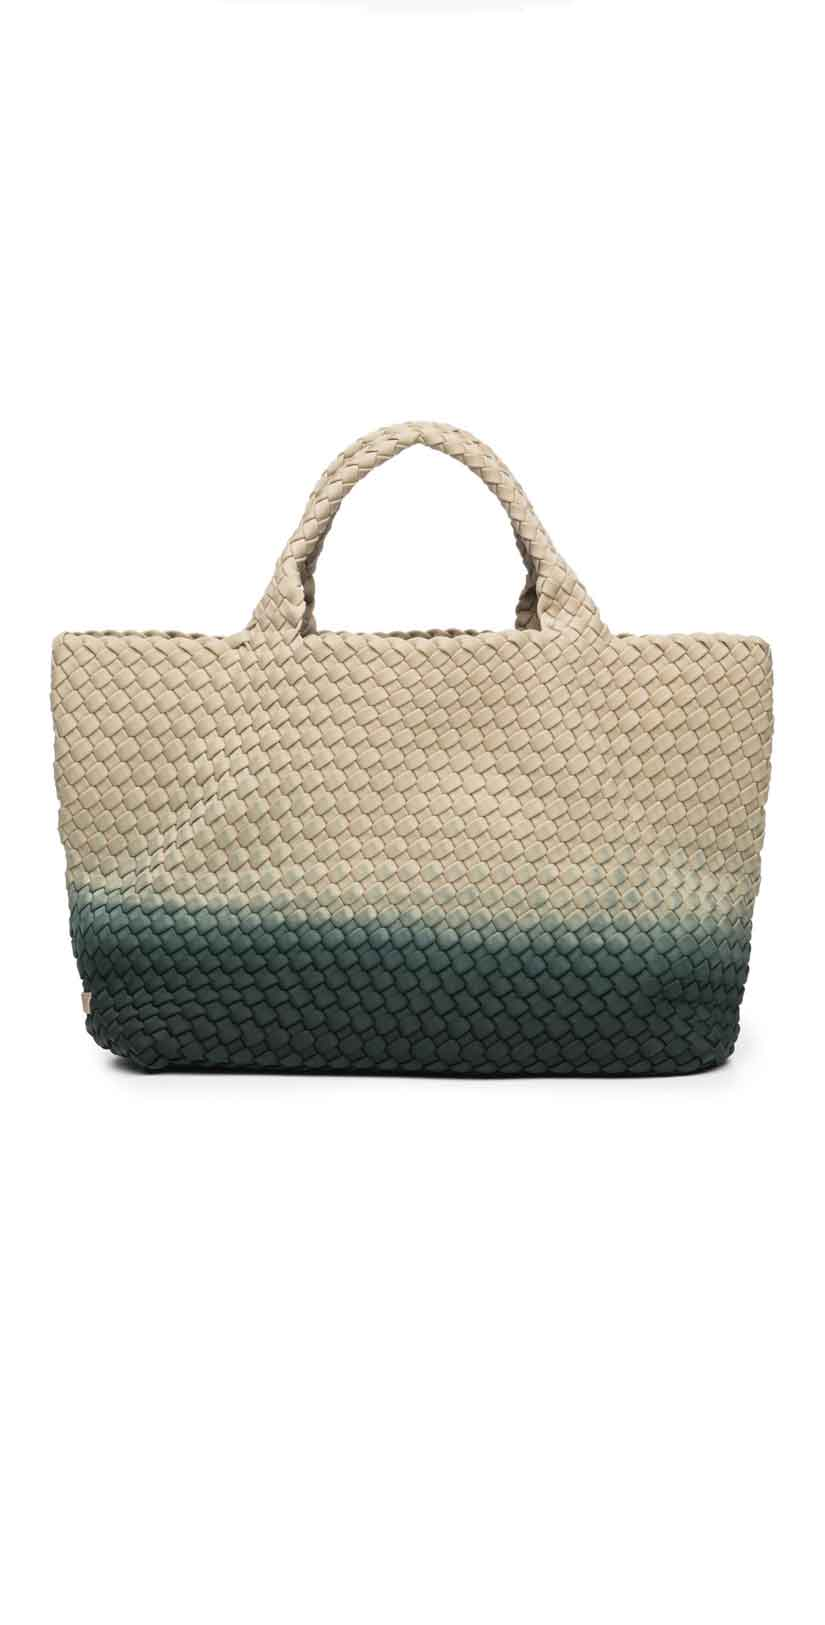 Deux Lux St. Barths Small Tote in Khaki: